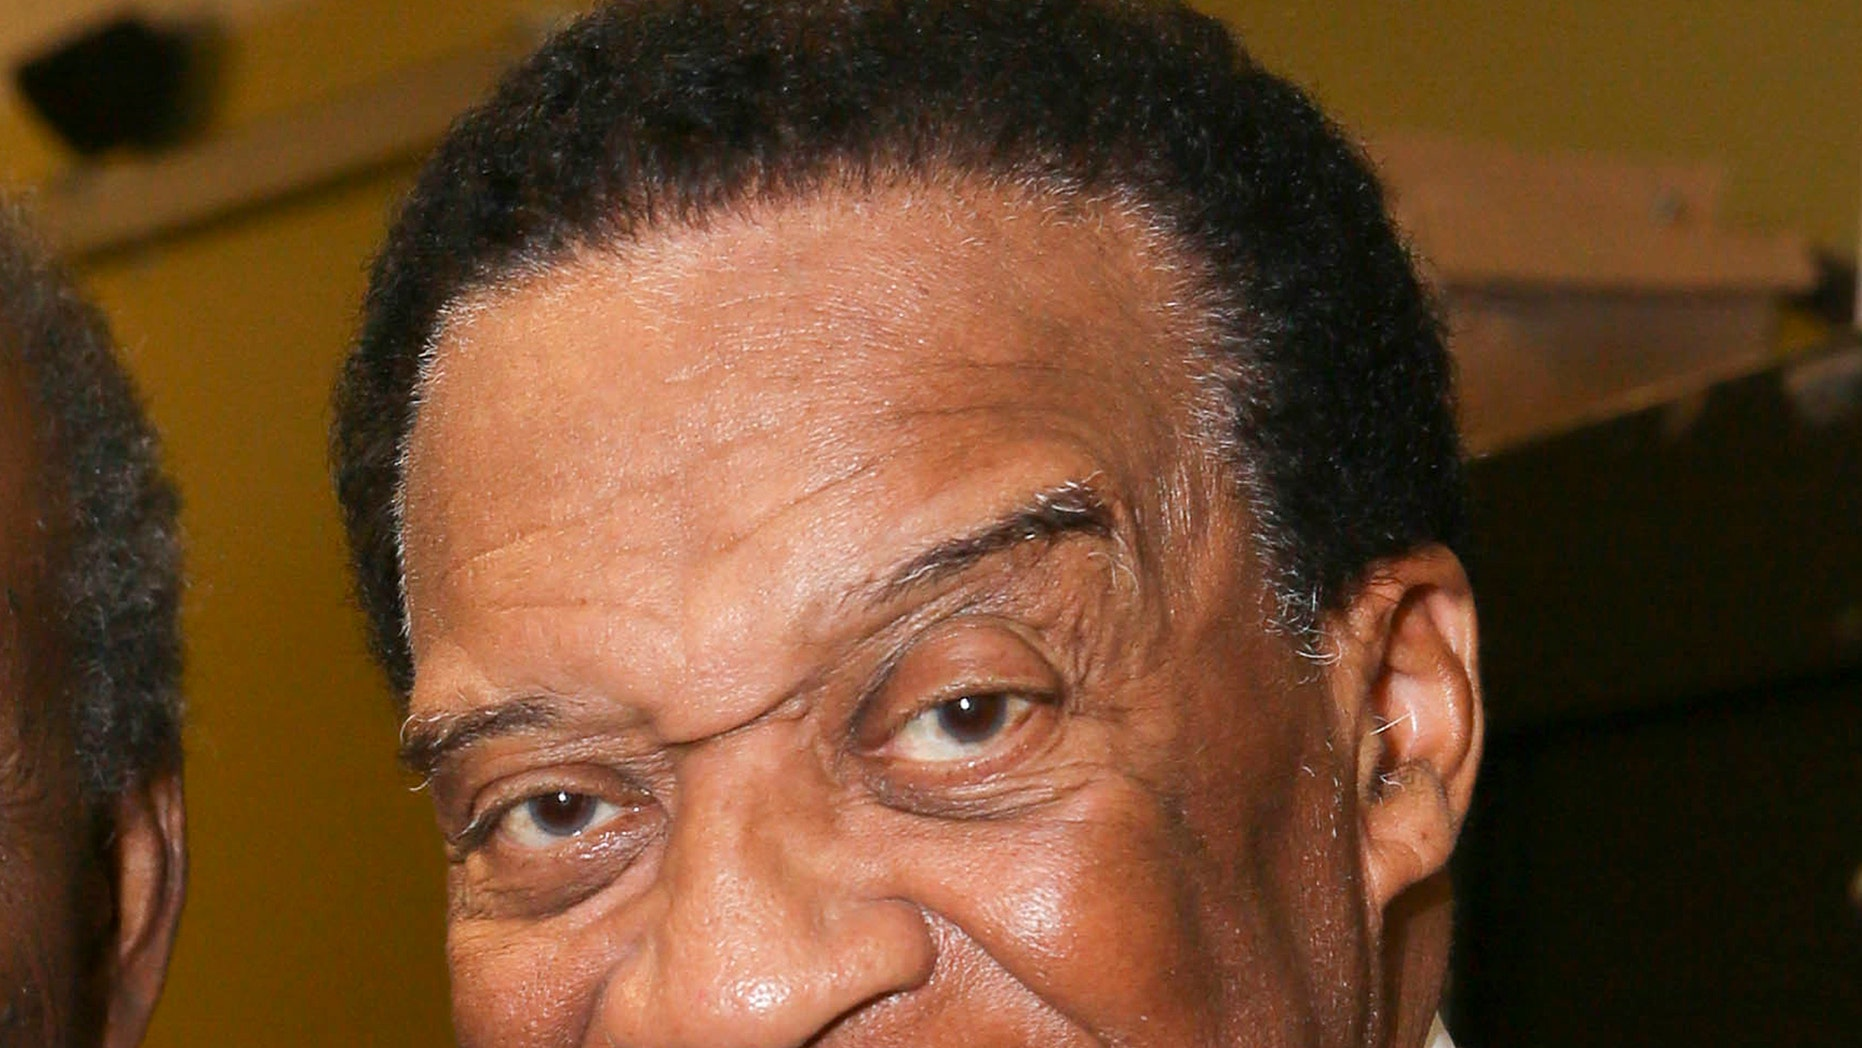 """In this May 23, 2014 file photo, Bernie Casey appears after a performance of """"The Tallest Tree in the Forest"""" in in Los Angeles. Casey, the professional football player turned actor known for parts in """"Revenge of the Nerds"""" and """"I'm Gonna Git You Sucka,"""" died Tuesday, Sept. 19, 2017, in Los Angeles after a brief illness. He was 78."""